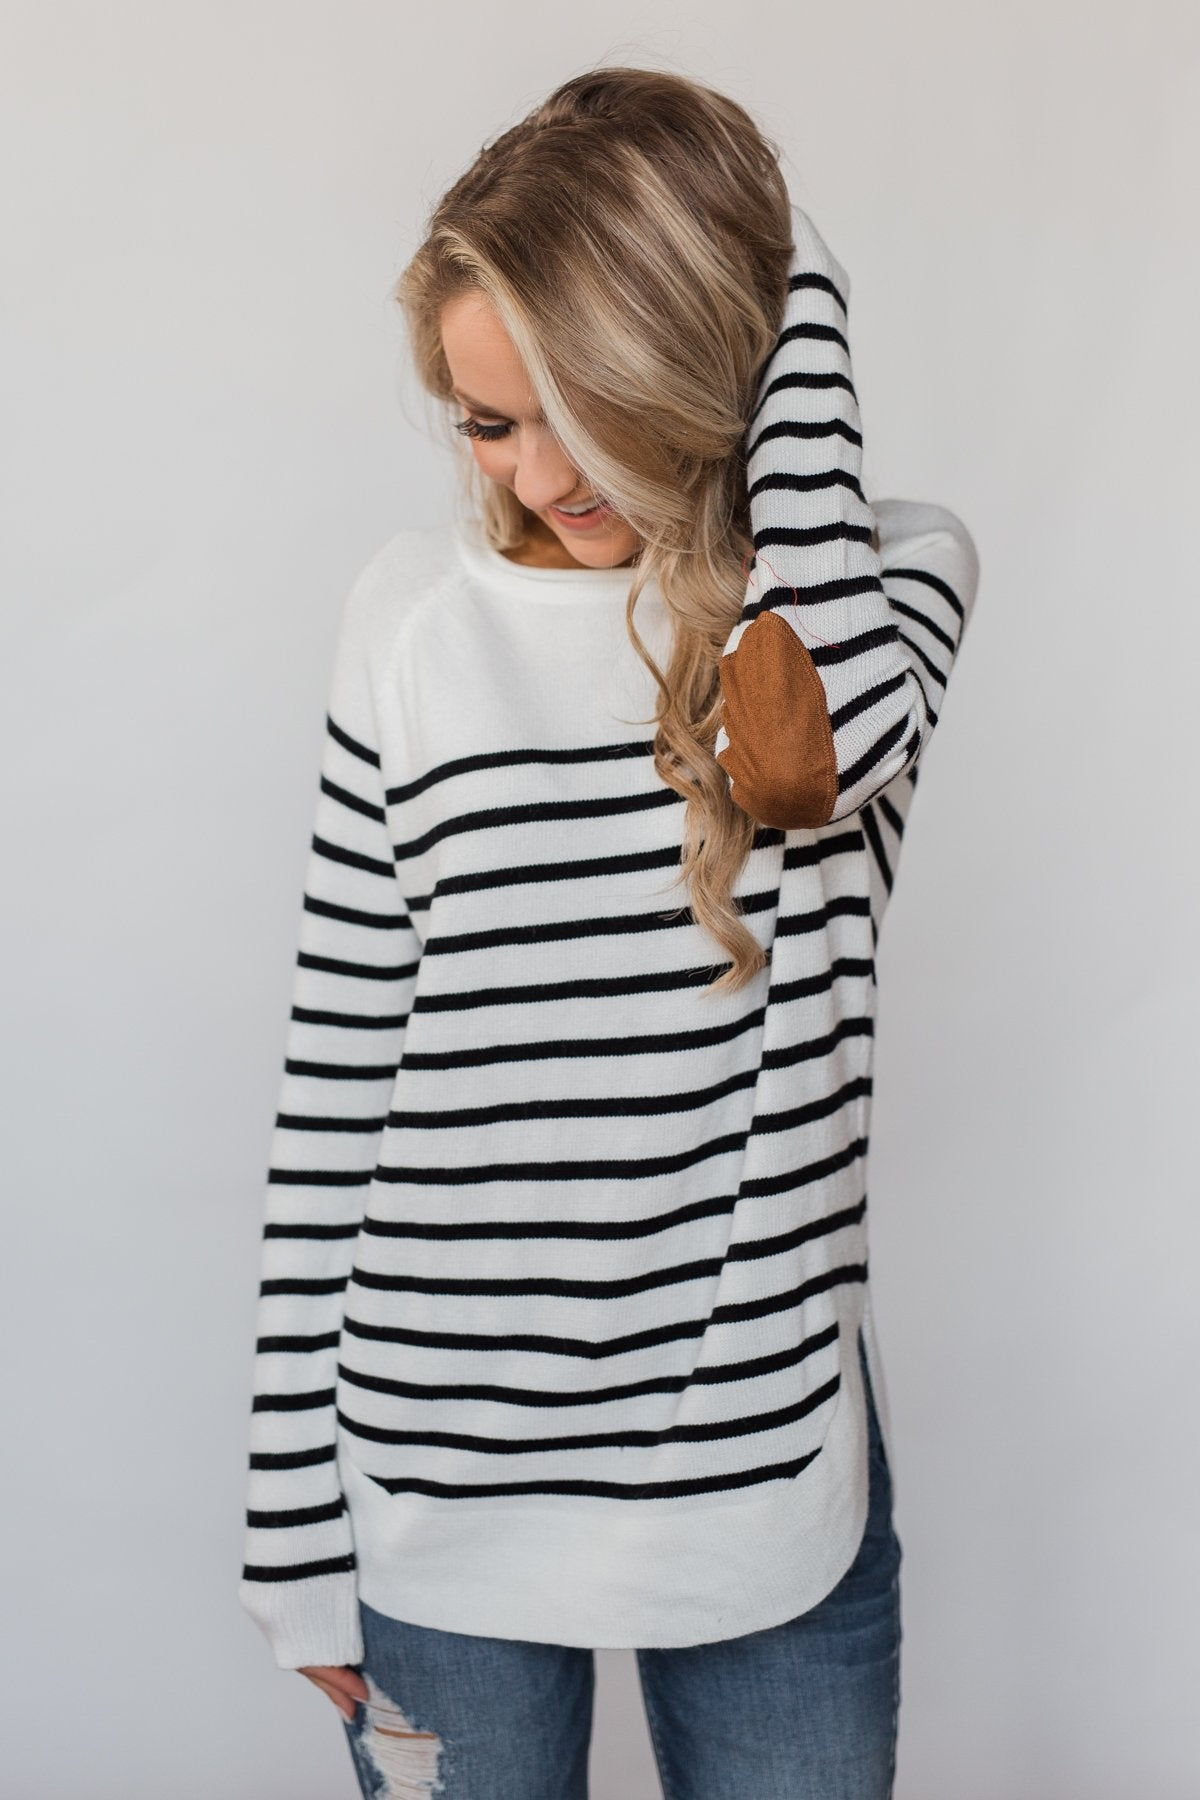 Cozy in Stripes Elbow Patch Sweater - Black & White